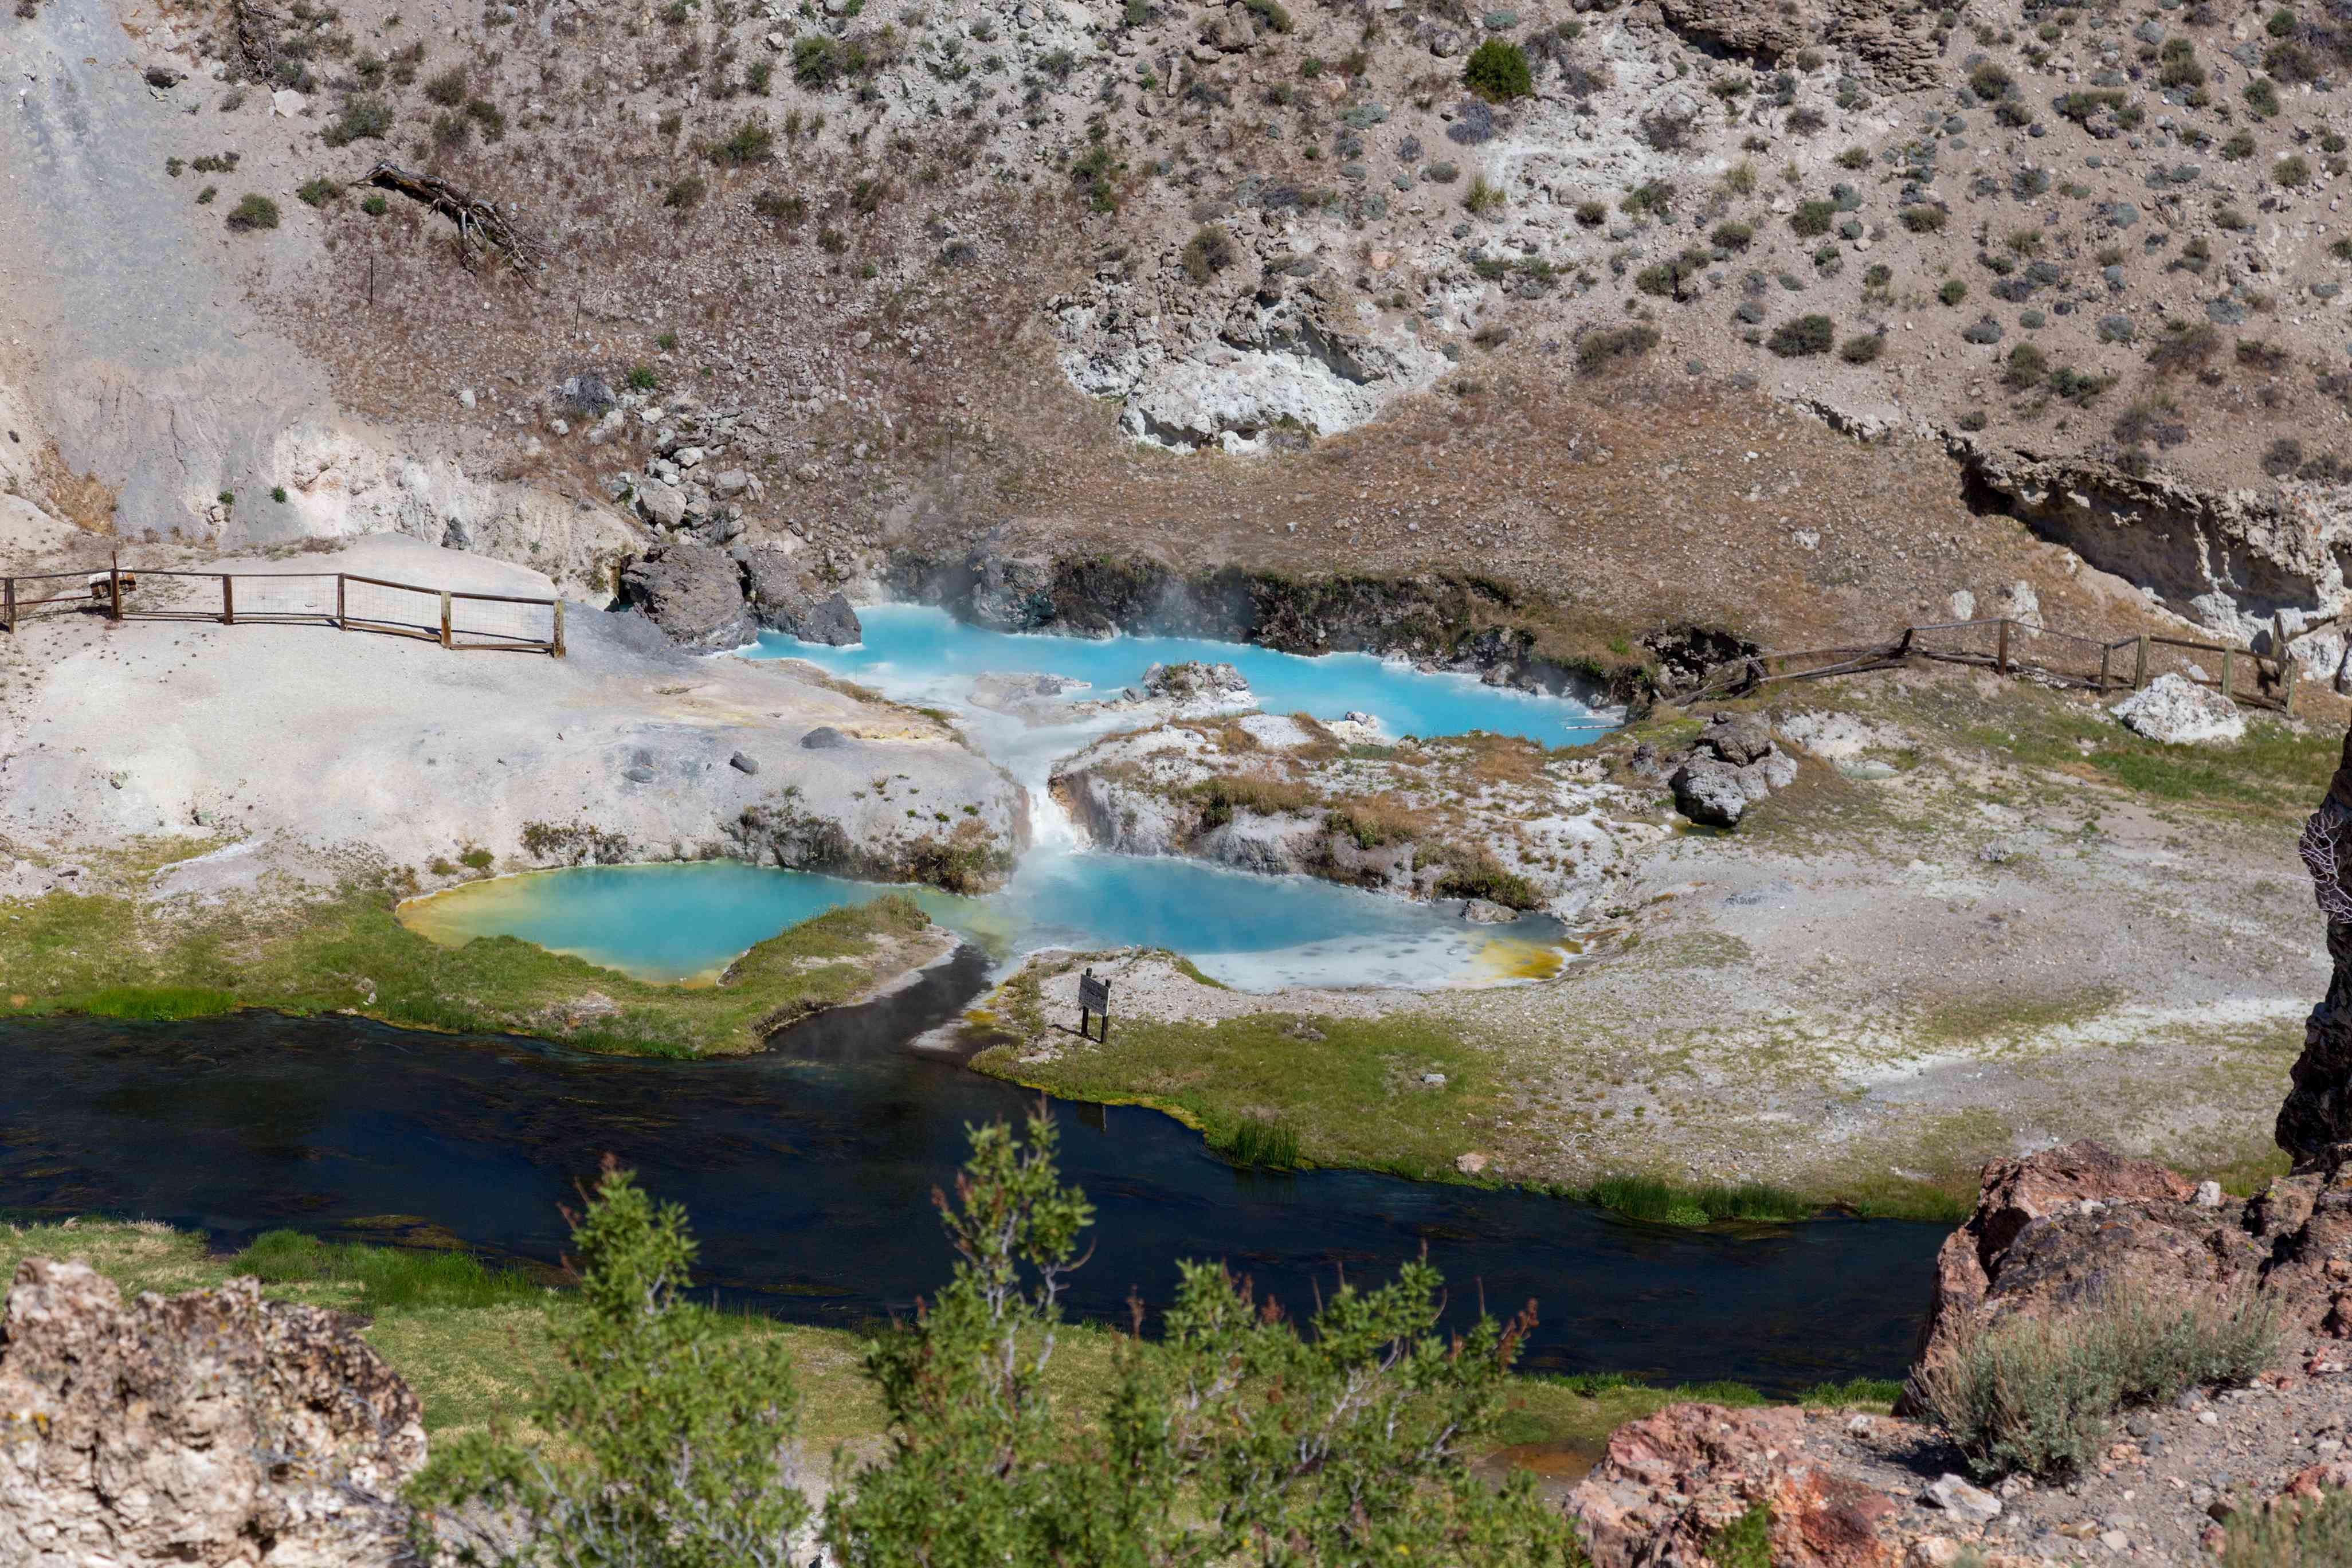 Bright blue thermal pools in the Long Valley Caldera